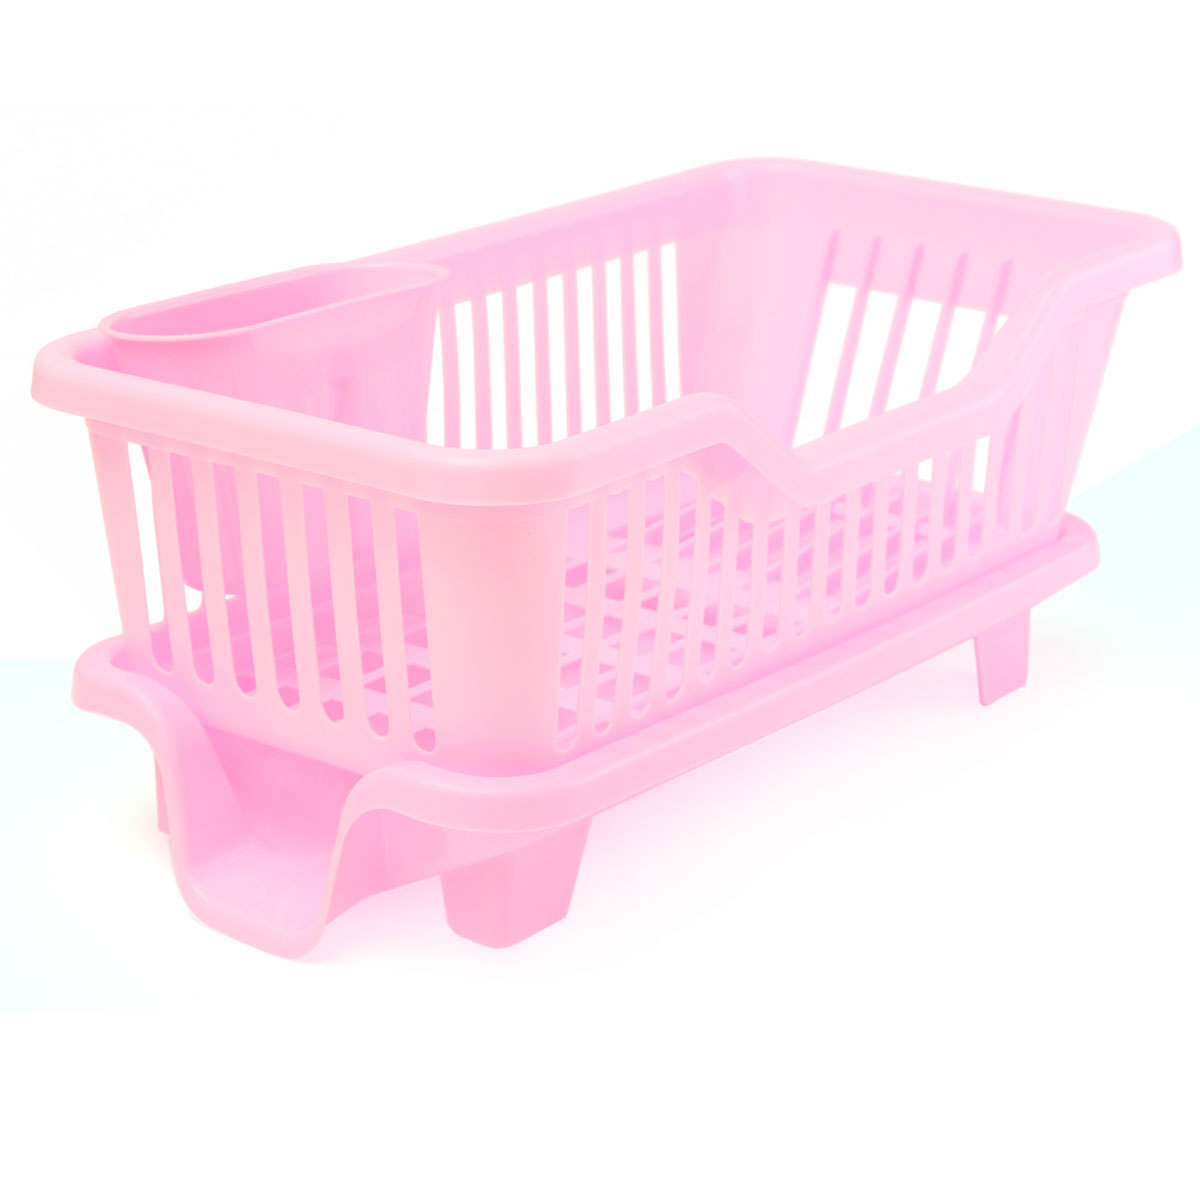 drying rack singapore with 4 Color Kitchen Dish Drainer Drying Rack Washing Holder Basketorganizer Tray Pink 4670460 on 4 Color Kitchen Dish Sink Drainer Drying Rack Wash Holder Basketorganizer Tray Pink Intl 8550404 together with  also 2pcs Stainless Roll Kitchen Sink Storage Dish Drainer Fruit Dryshelves Rack Holder Green 48 X 23cm 9528061 together with Home Kitchen Wooden Mug Coffee Cups Drying Storage Rack Holder Hanger Organizer as well Clothes Drying Rack Singapore.